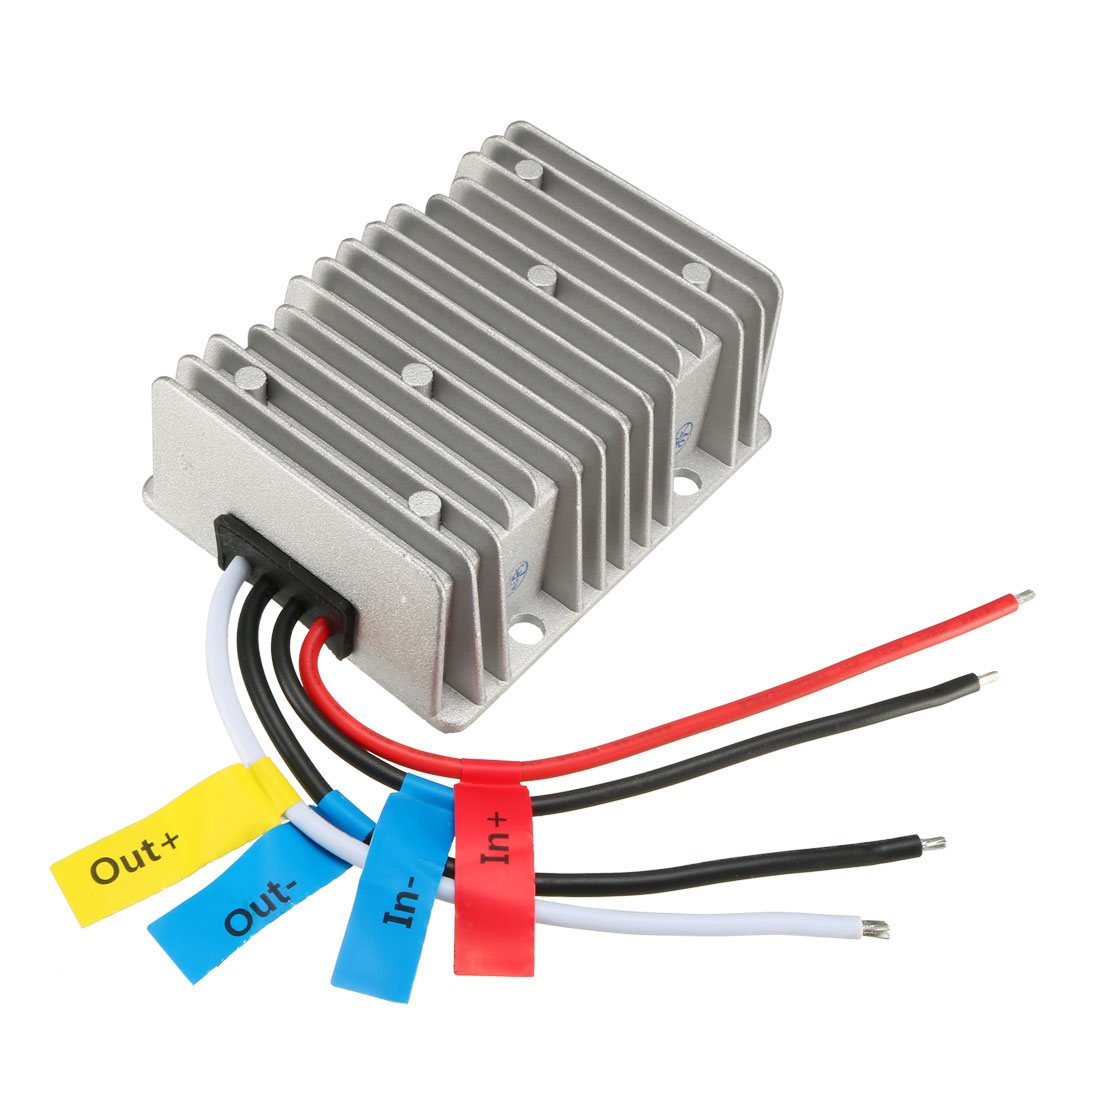 BIG-Size Voltage Buck Converter Regulator DC 48V Step-Down to DC 24V 15A 360W Waterproof Power Transformer